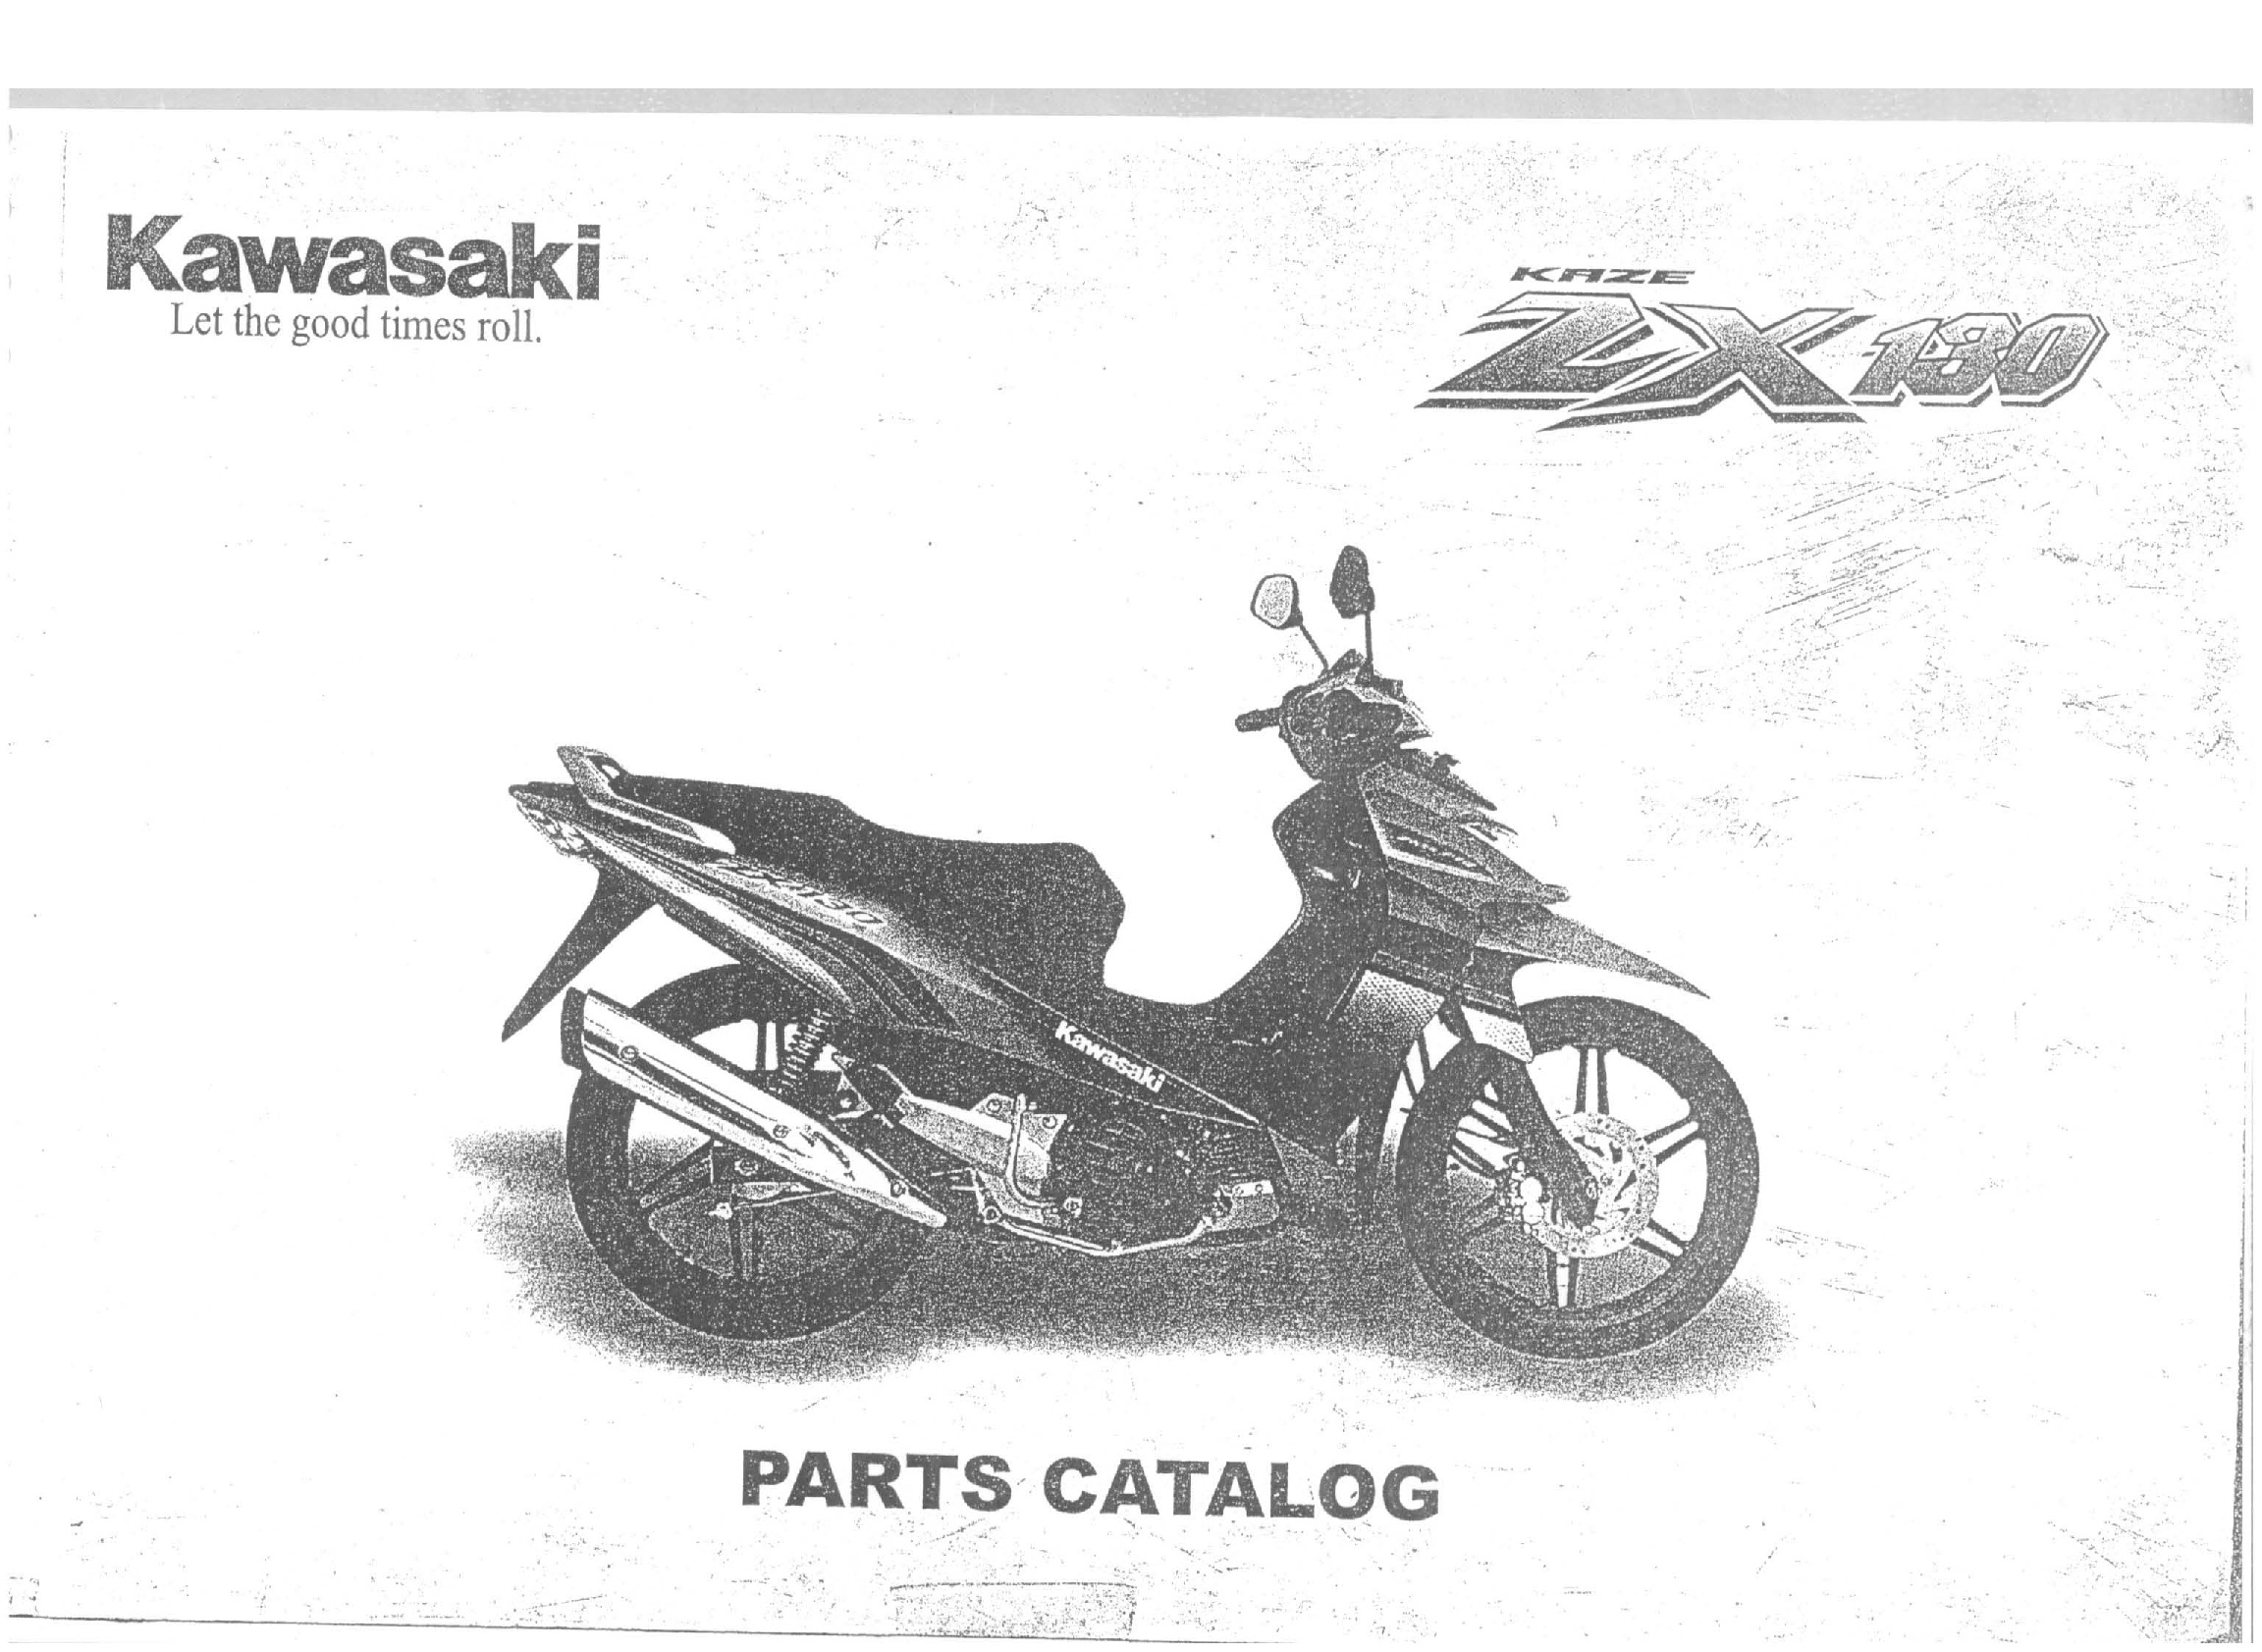 Kawasaki Kaze ZX130 Parts Catalog.pdf